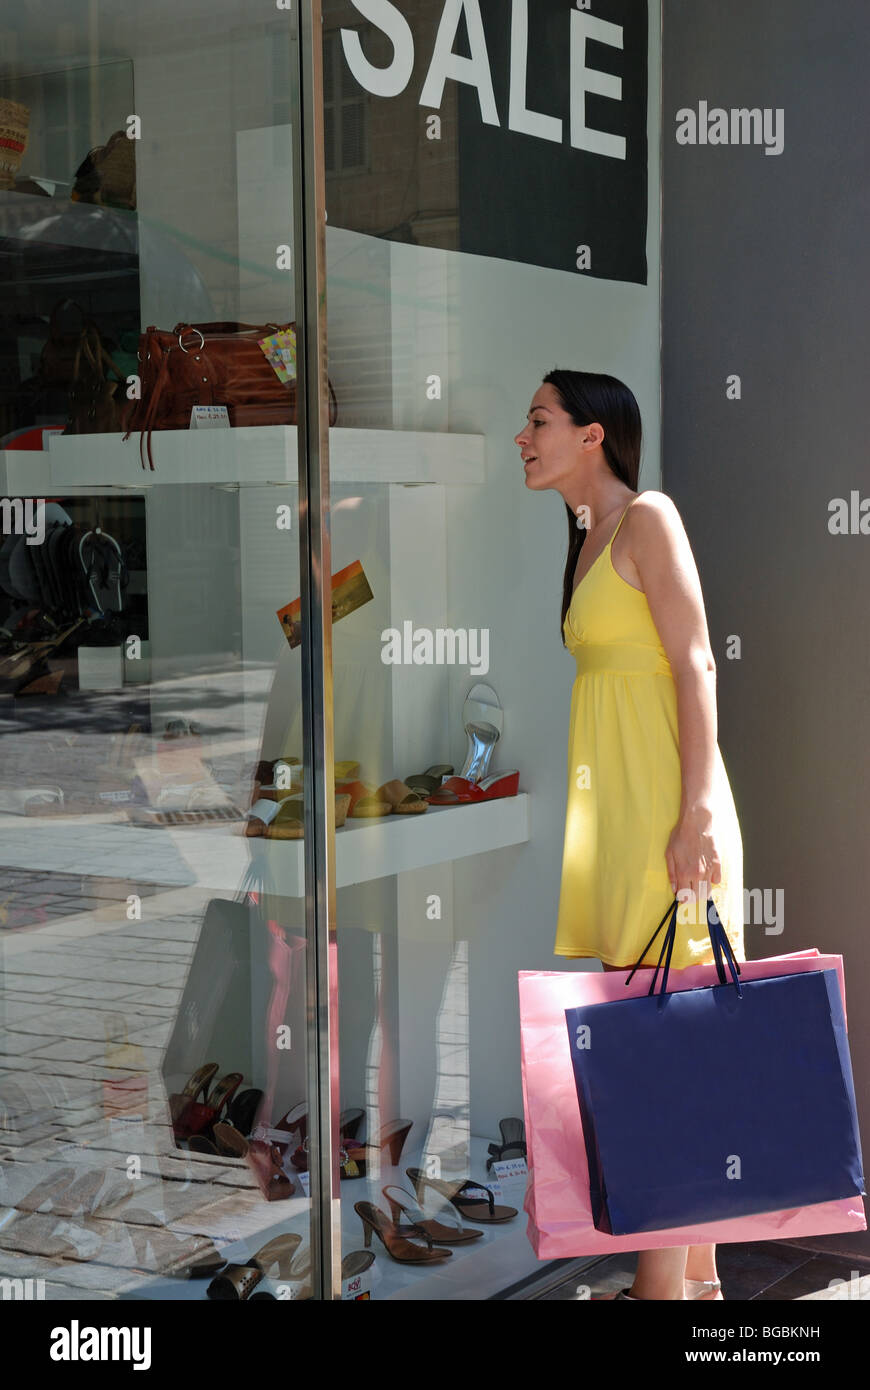 young woman on a shopping spree - Stock Image